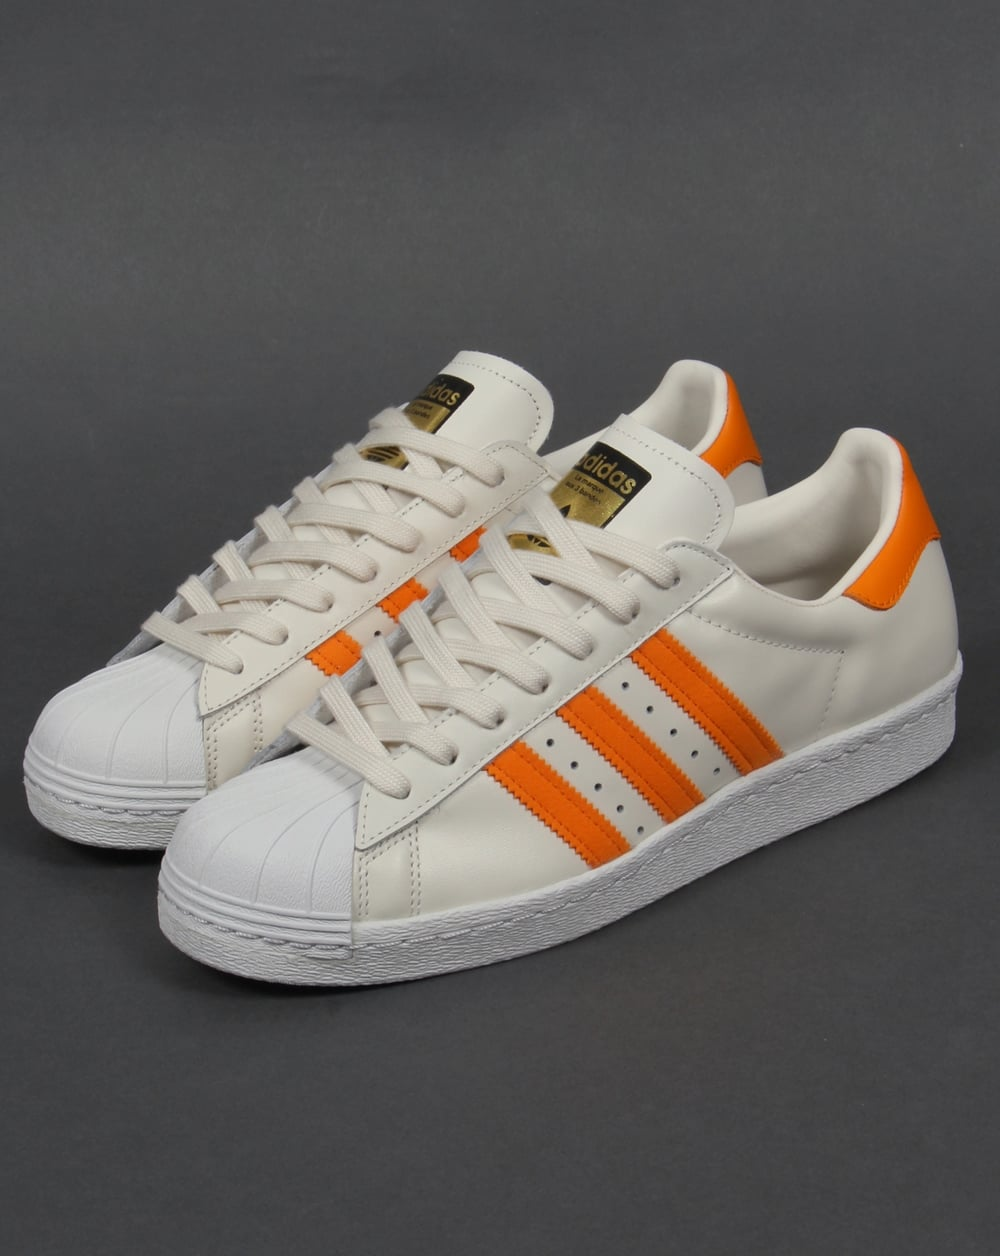 Adidas Orange Tennis Shoes